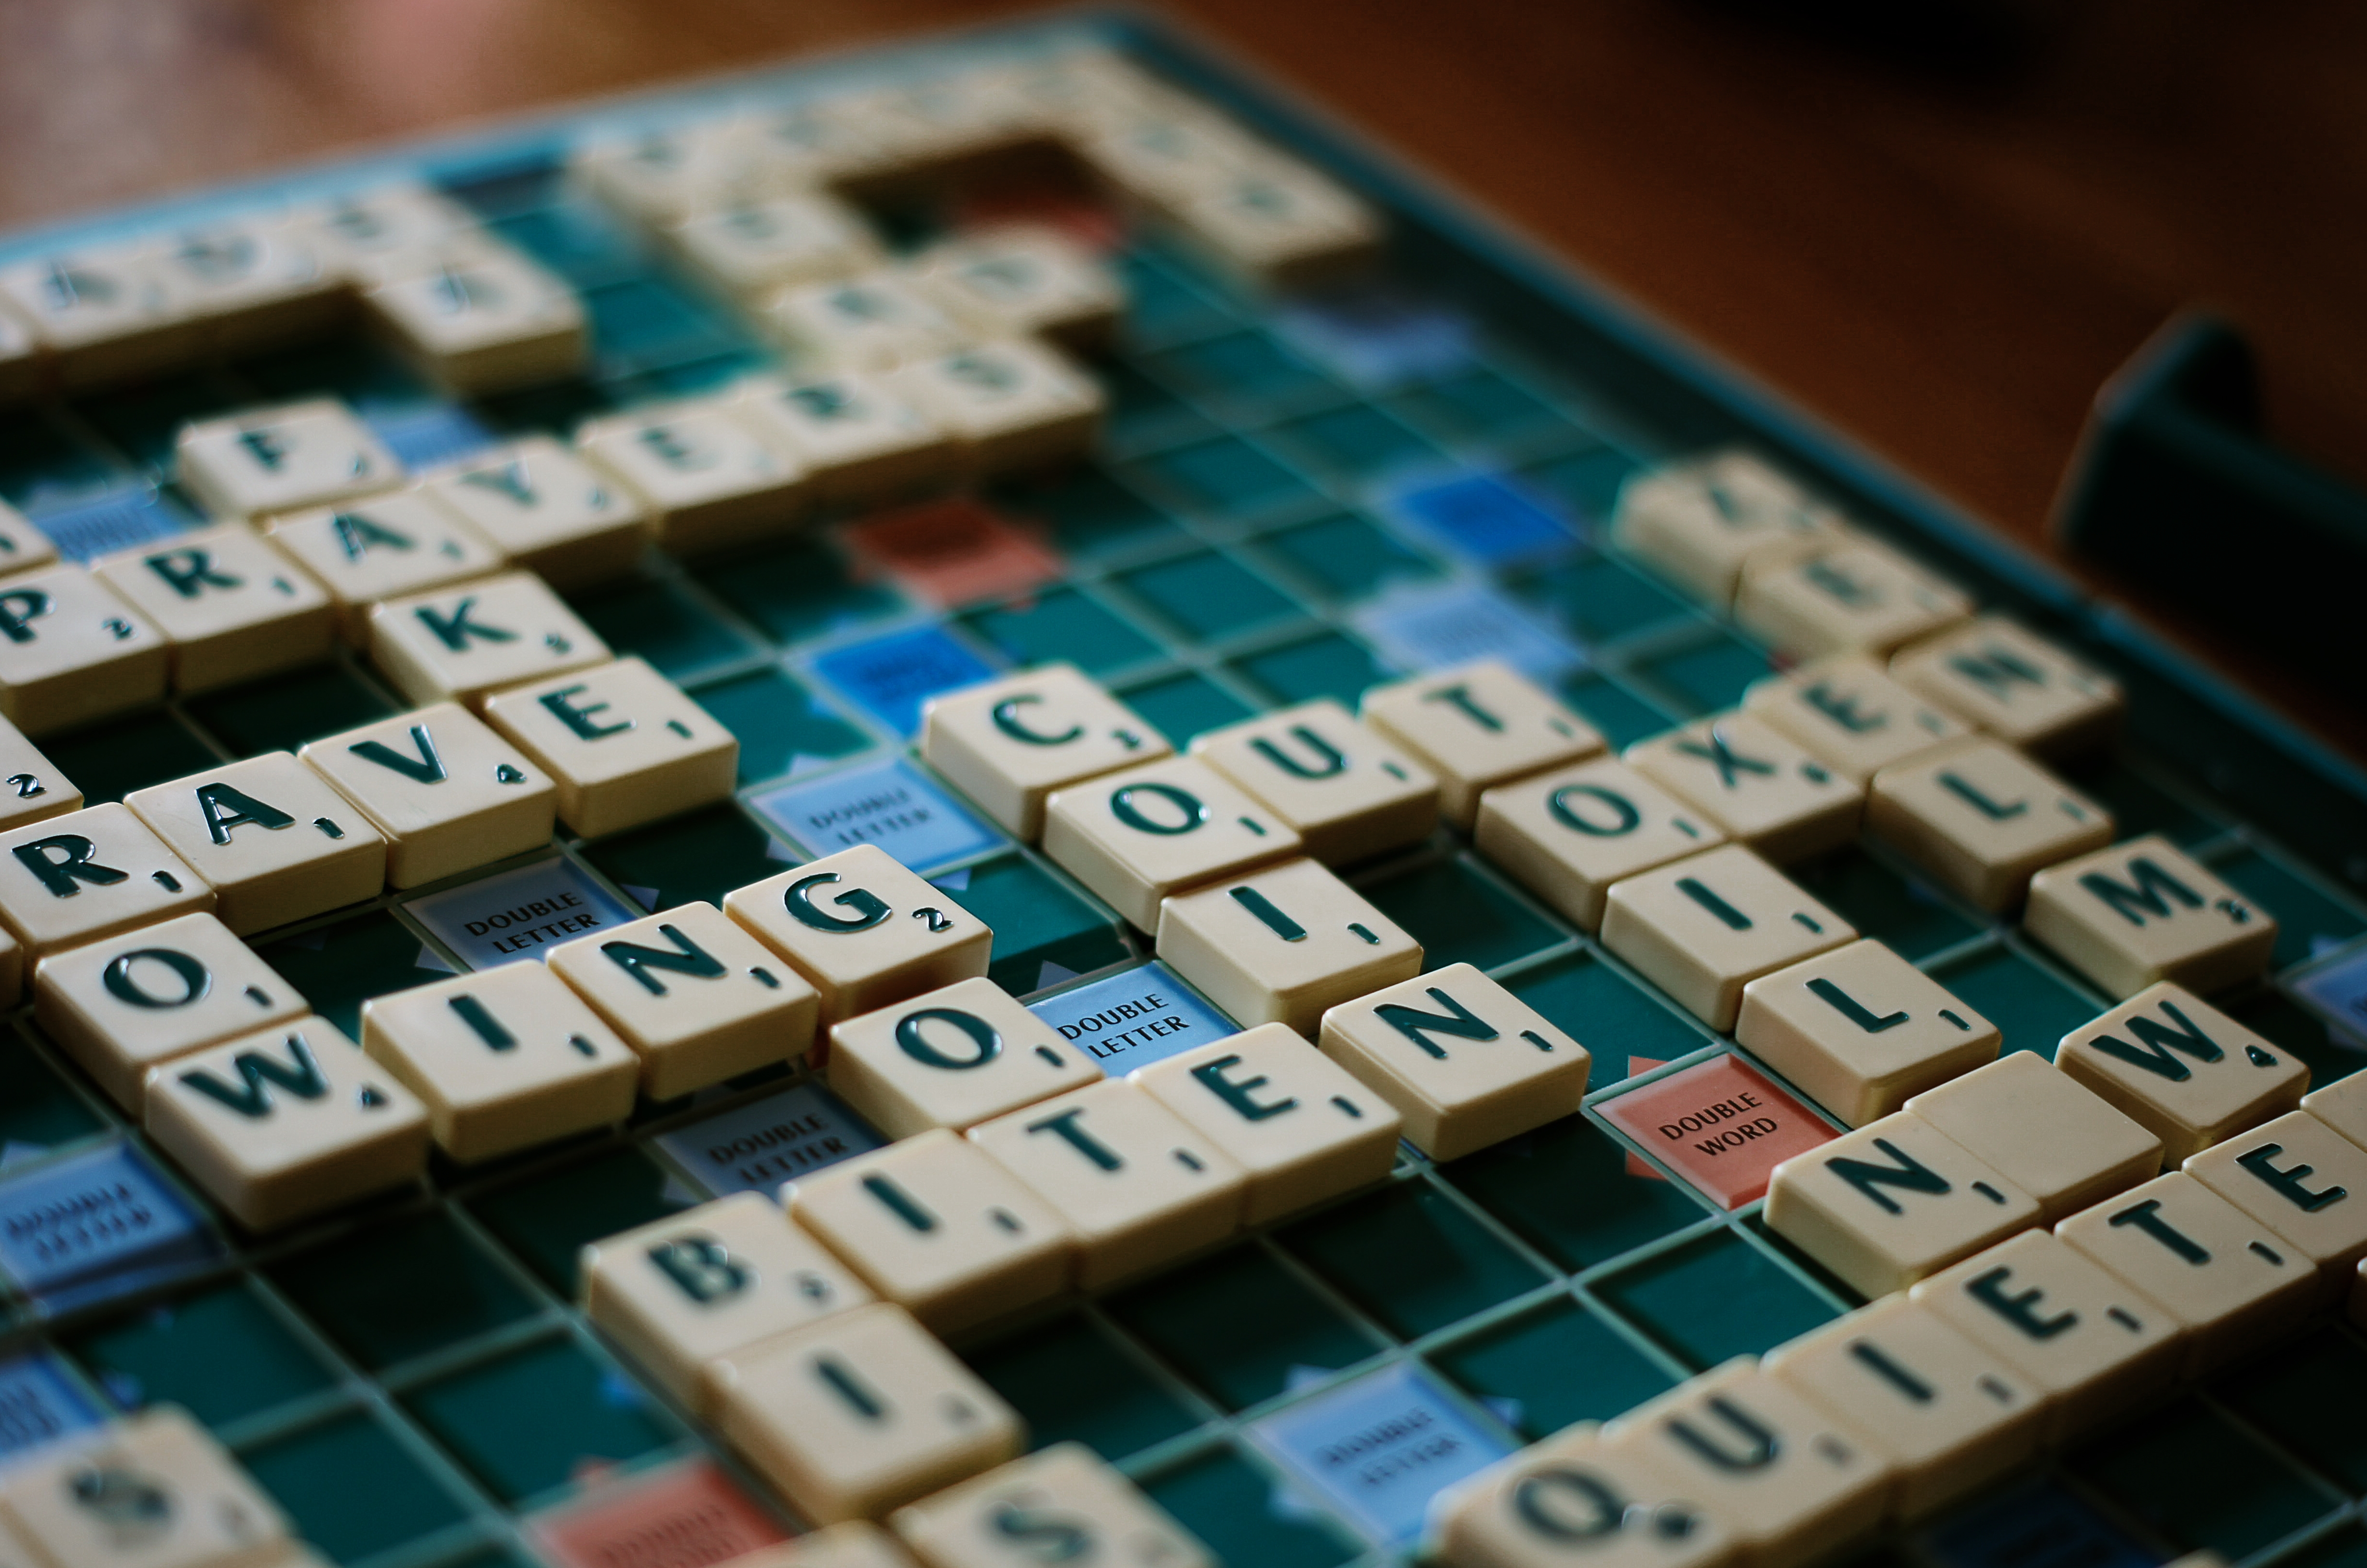 how to start game of scrabble